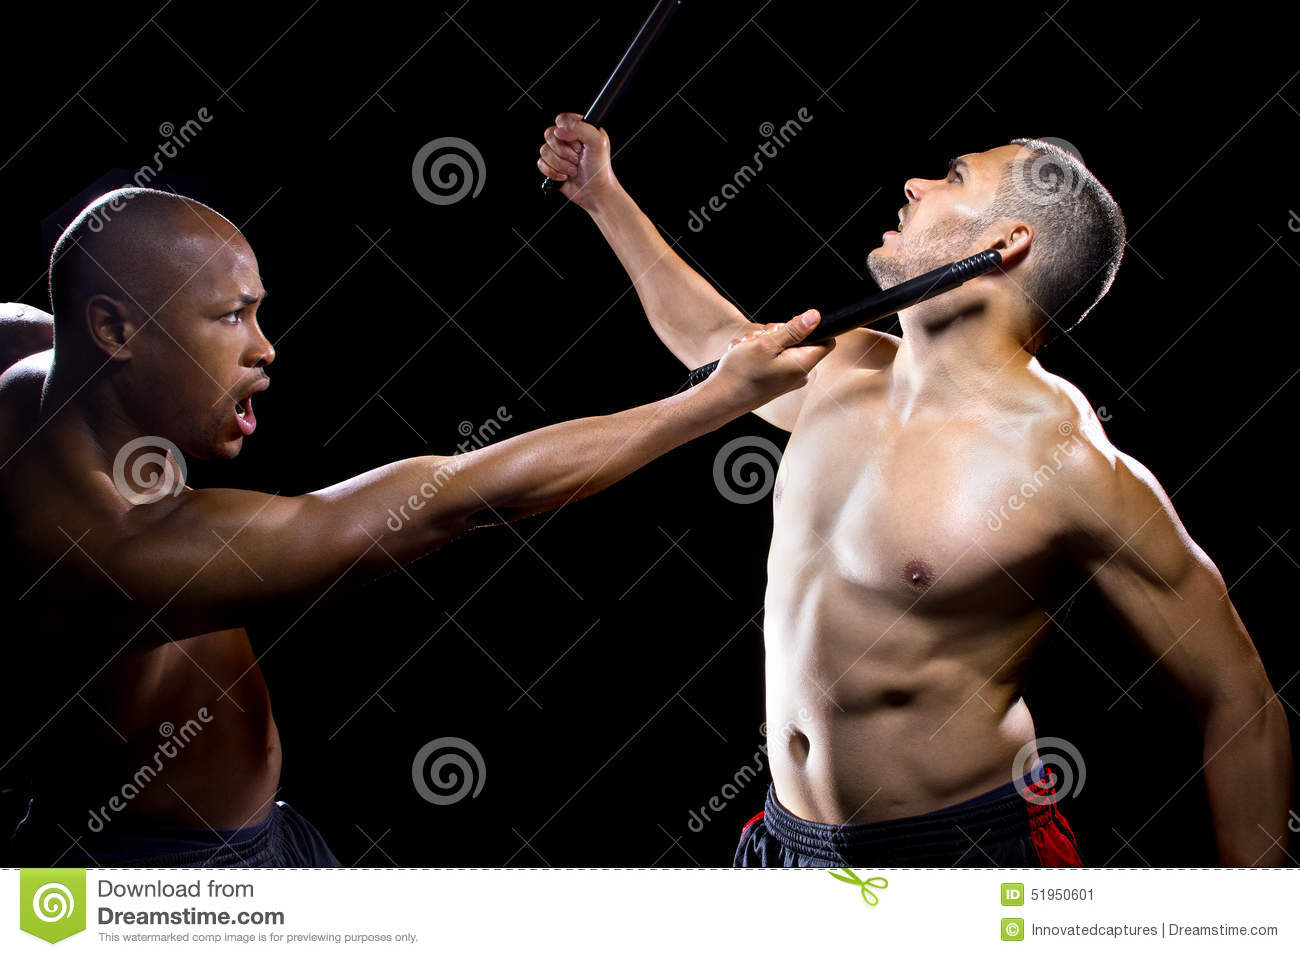 Kali Escrima Fighters Sparring Stock Image - Image of